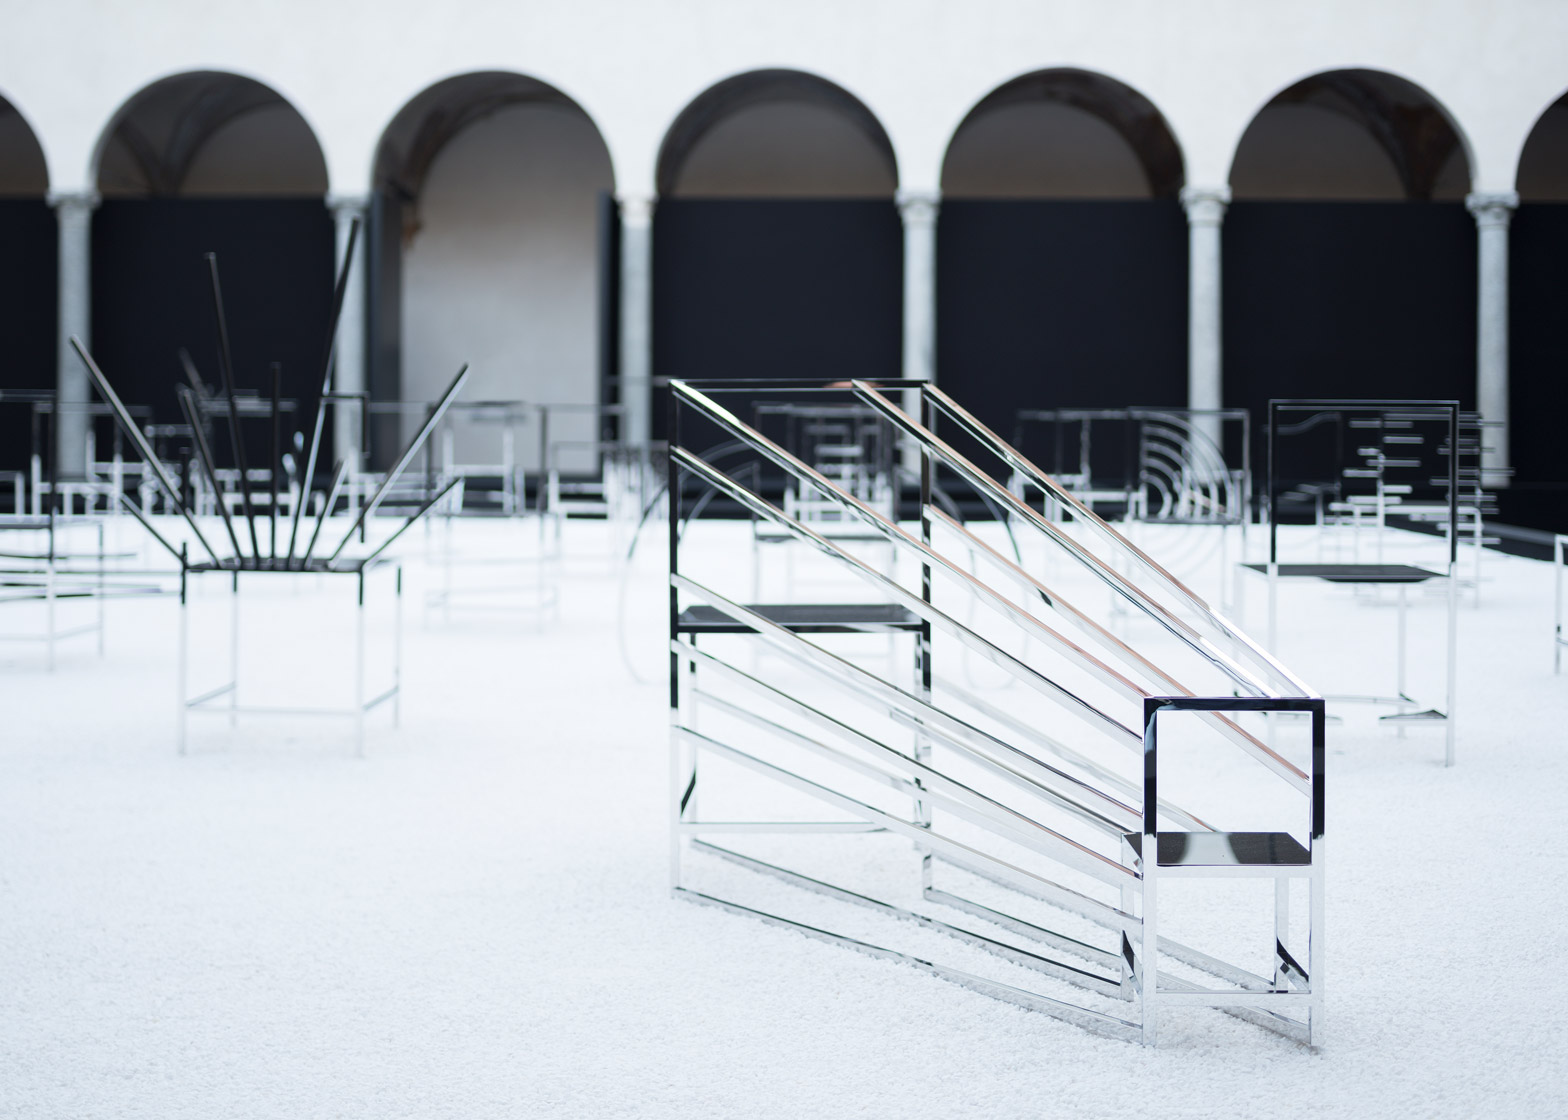 Attirant 5 Of 14; 50 Manga Chairs By Nendo